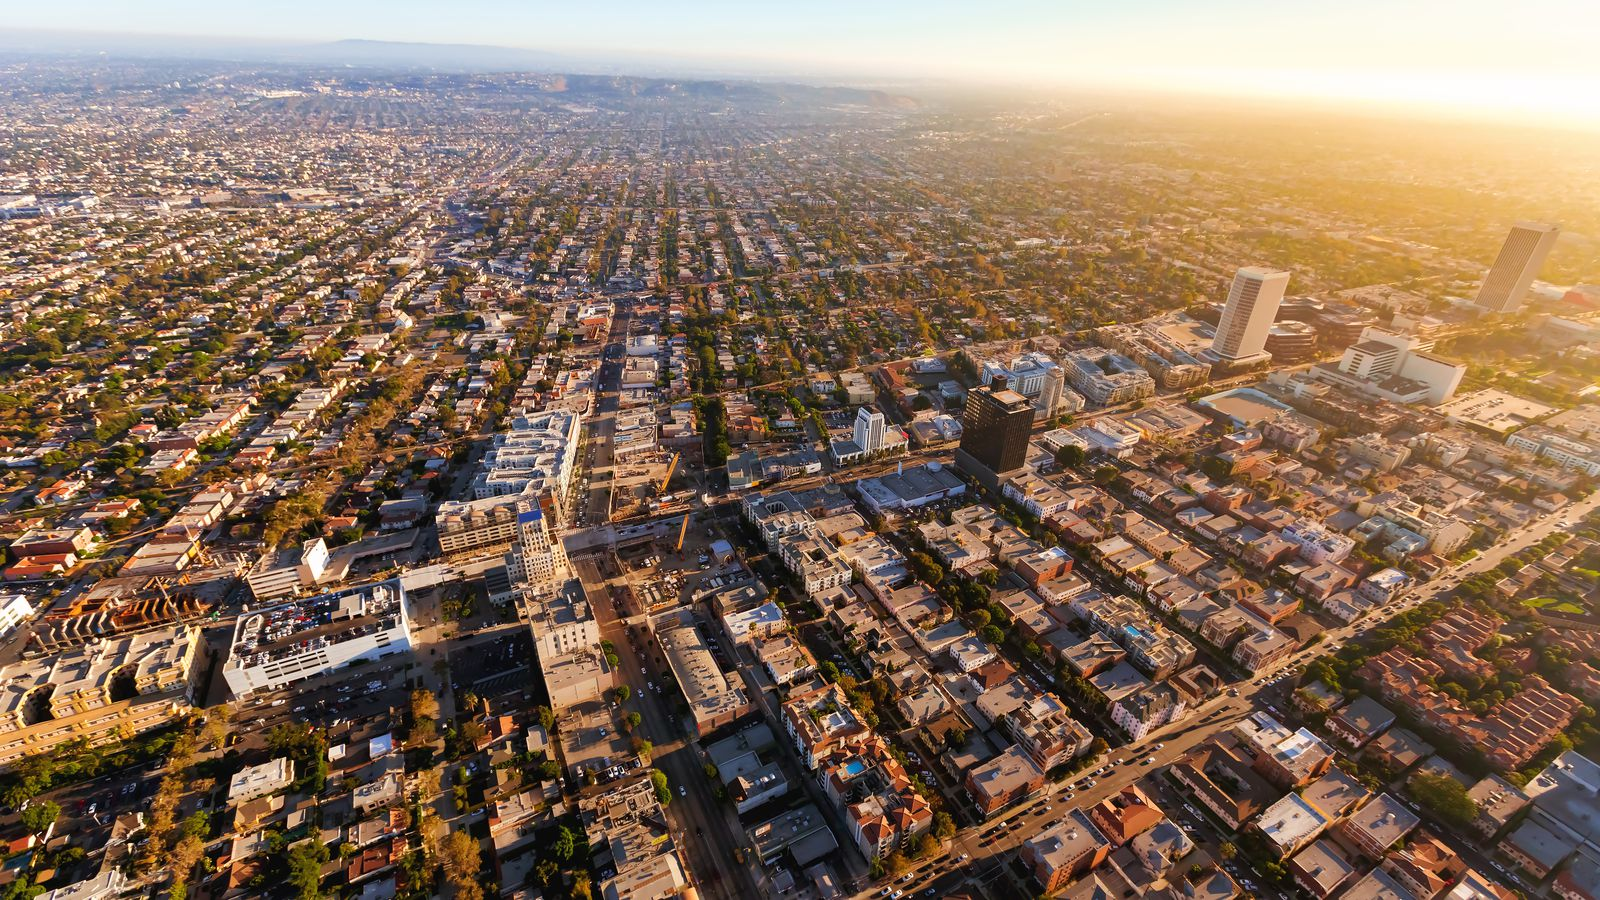 Rents rise in la for the sixth month in a row curbed la for One month rental los angeles